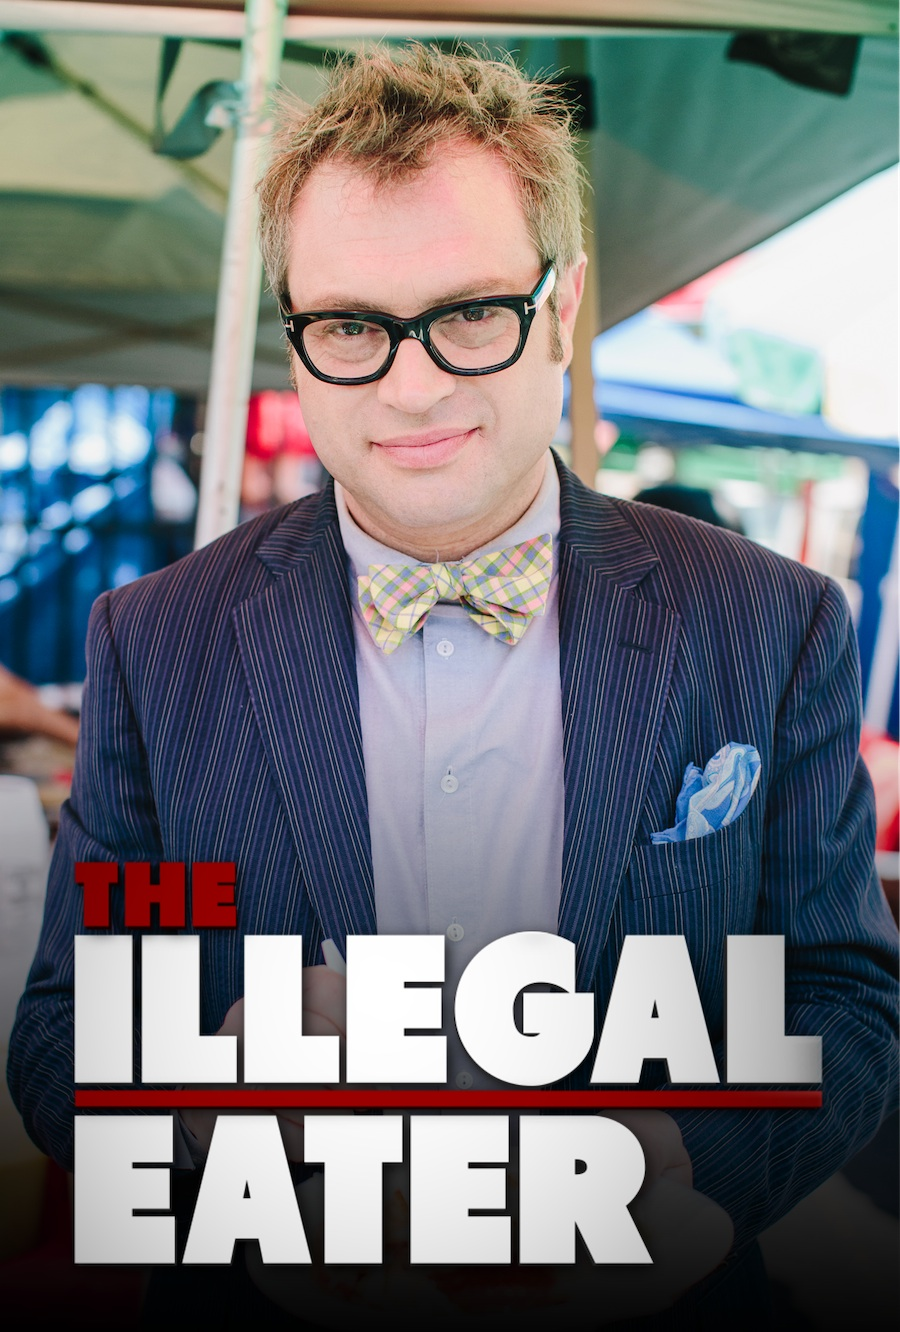 The star of The Illegal Eater, Steven Page